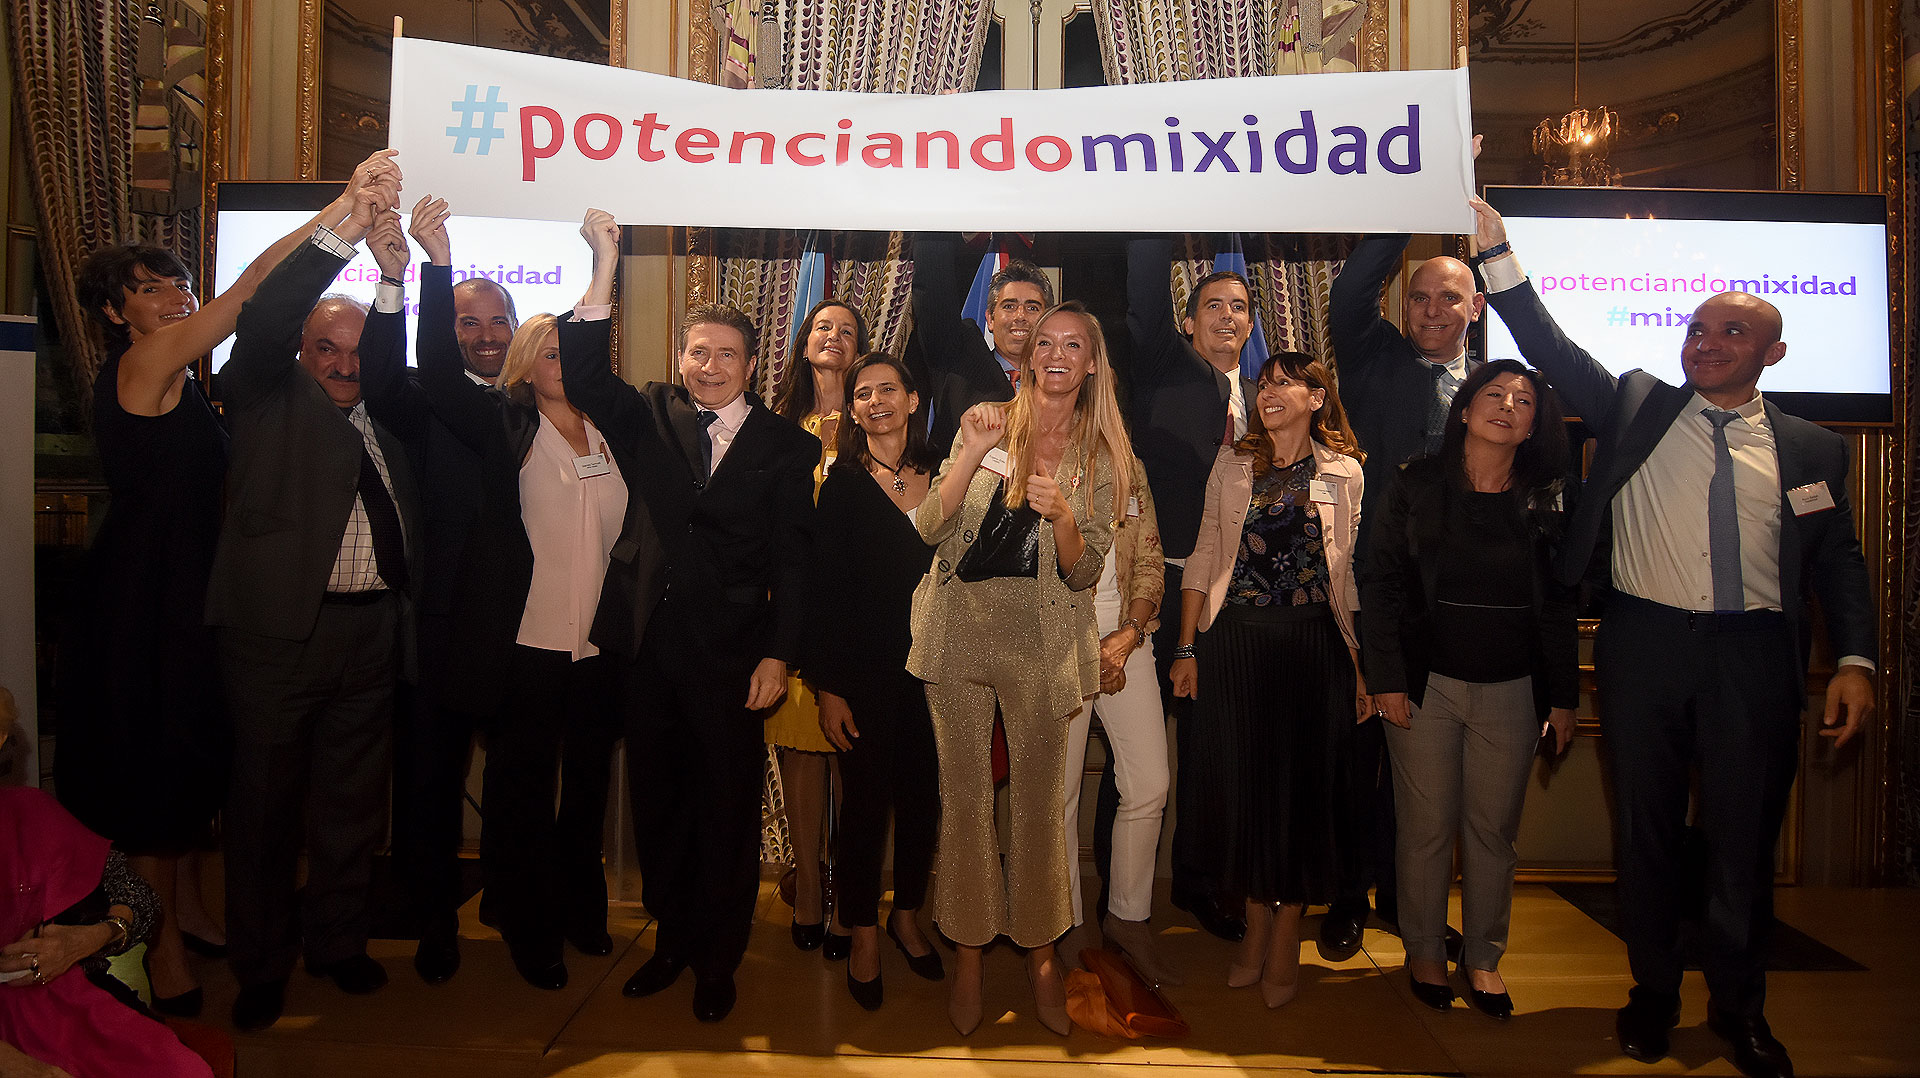 Las organizaciones FAME, FLOR, Fundación Global, Marianne, Red de Empresas por la Diversidad (RED), UPWARD, Vital Voices y Women Corporate Directors (WCD) presentaron los hashtags #PotenciandoMixidad y #Mixidad promoviendo la composición mixta de género en todos los ámbitos de la vida social y laboral.